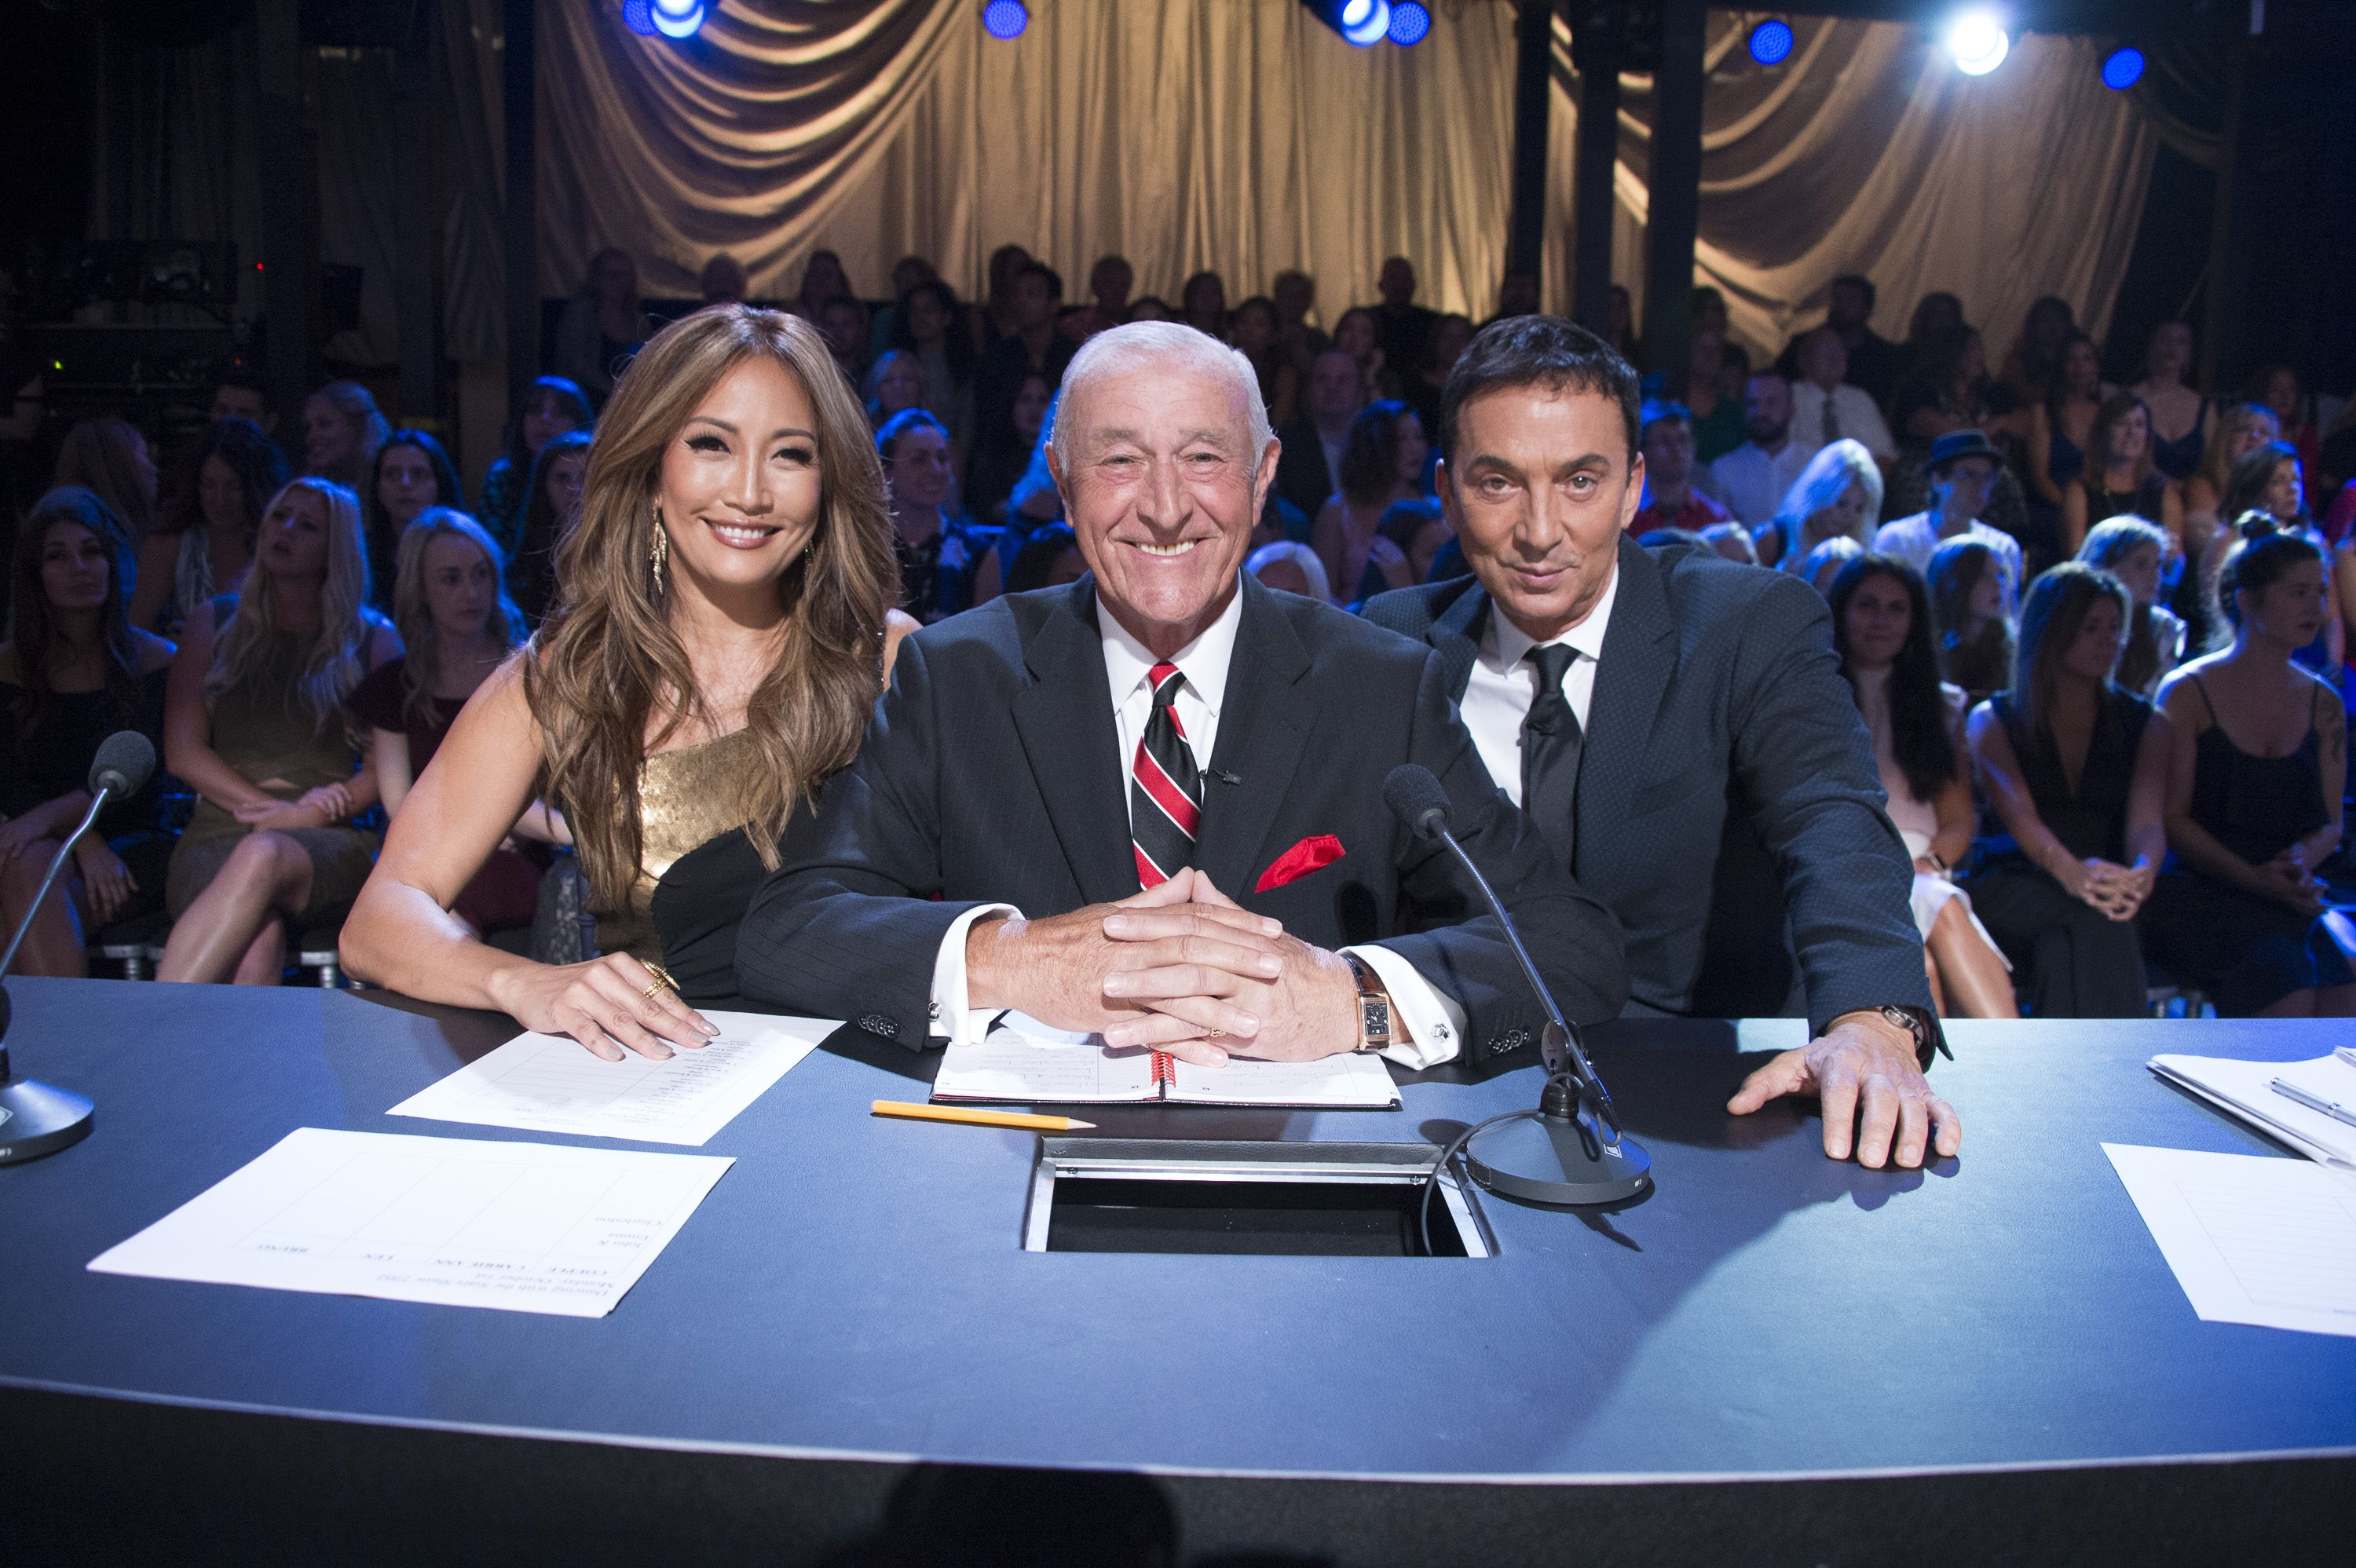 11 Things You Didn't Know About the Dancing with the Stars Judges